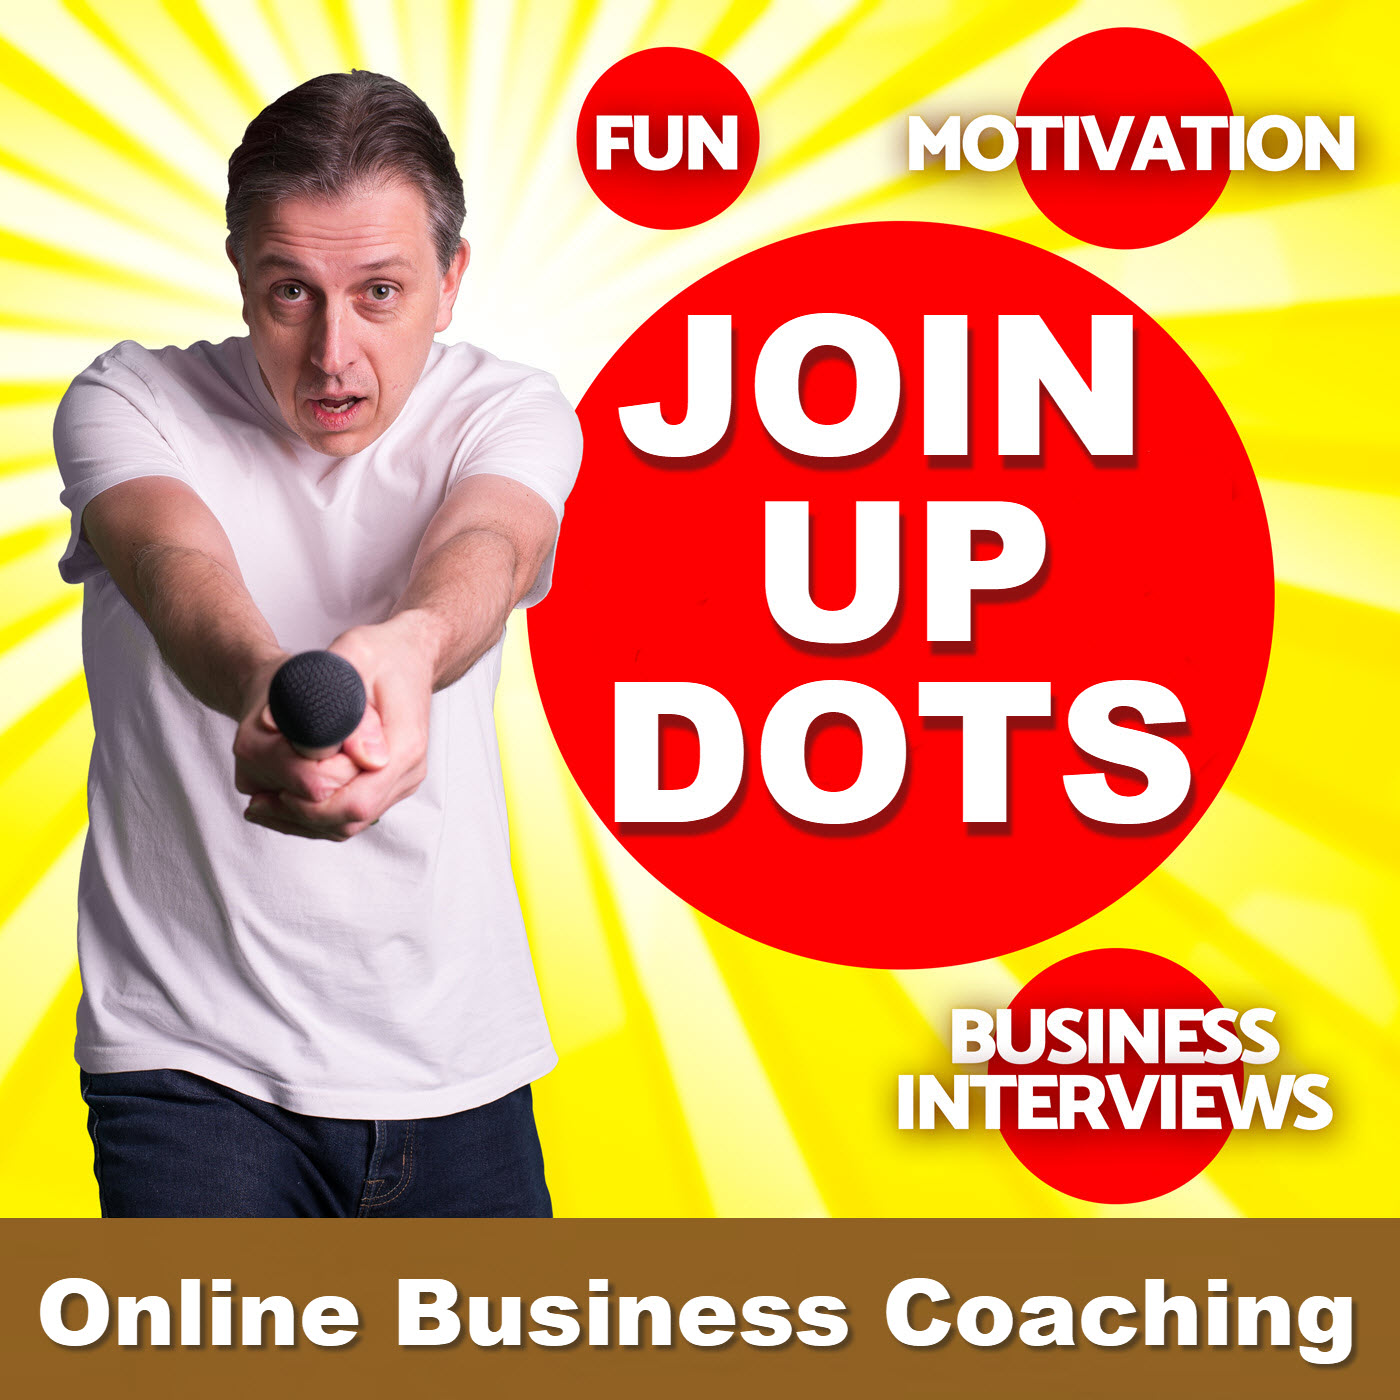 Business Coaching with Join Up Dots